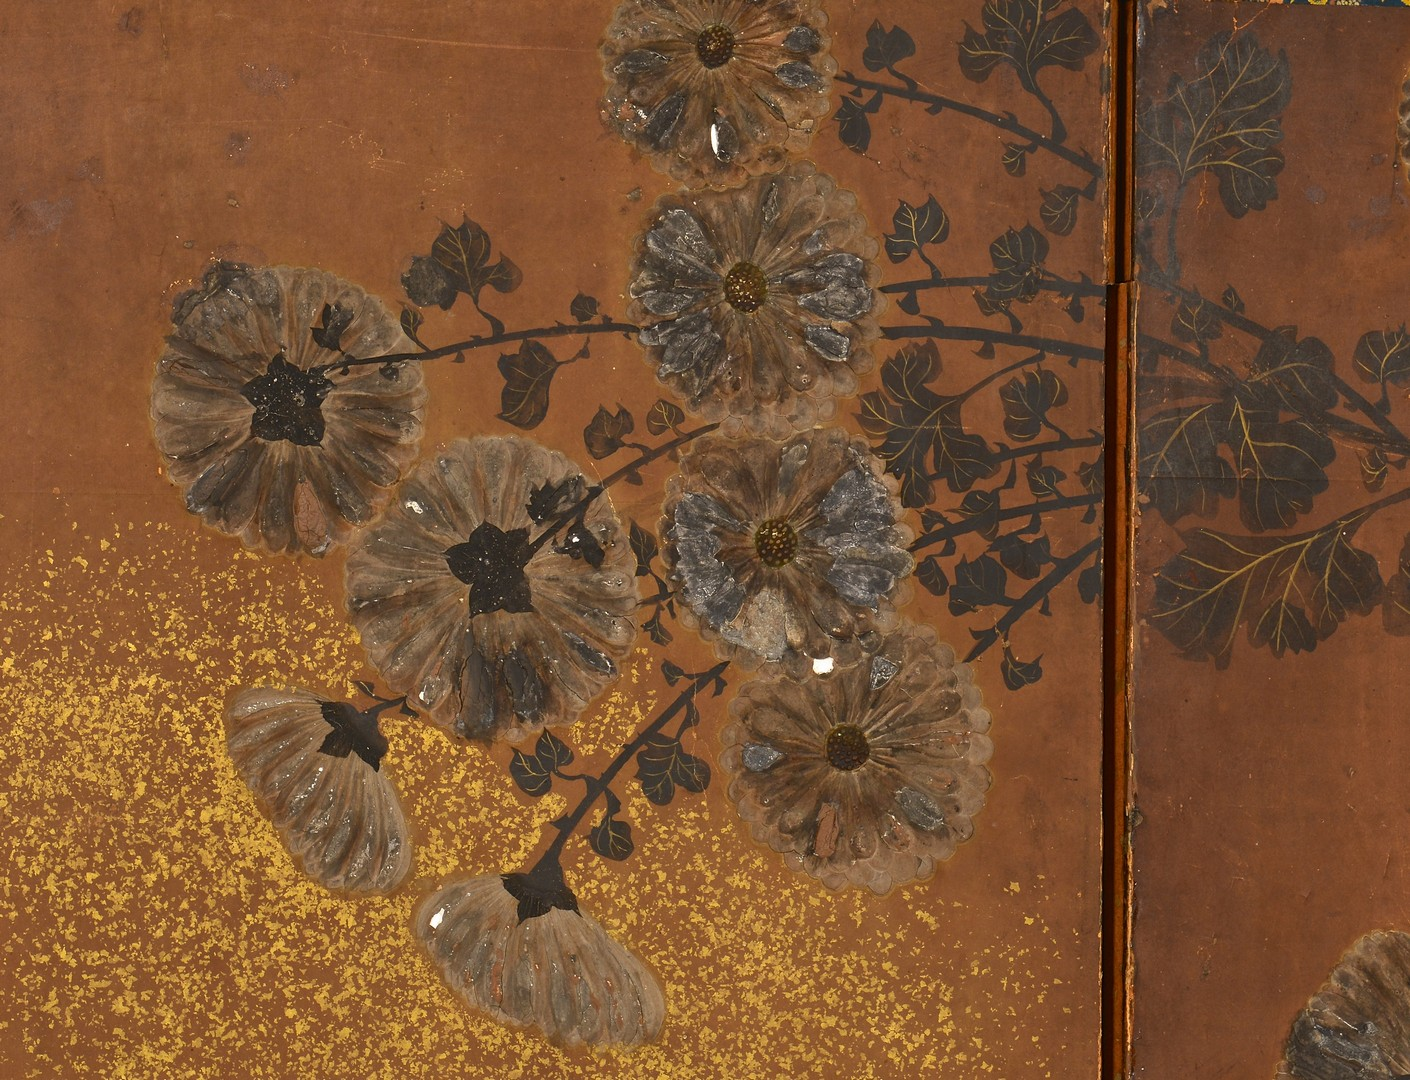 Lot 4010119: Painted Japanese Screen, Edo Period